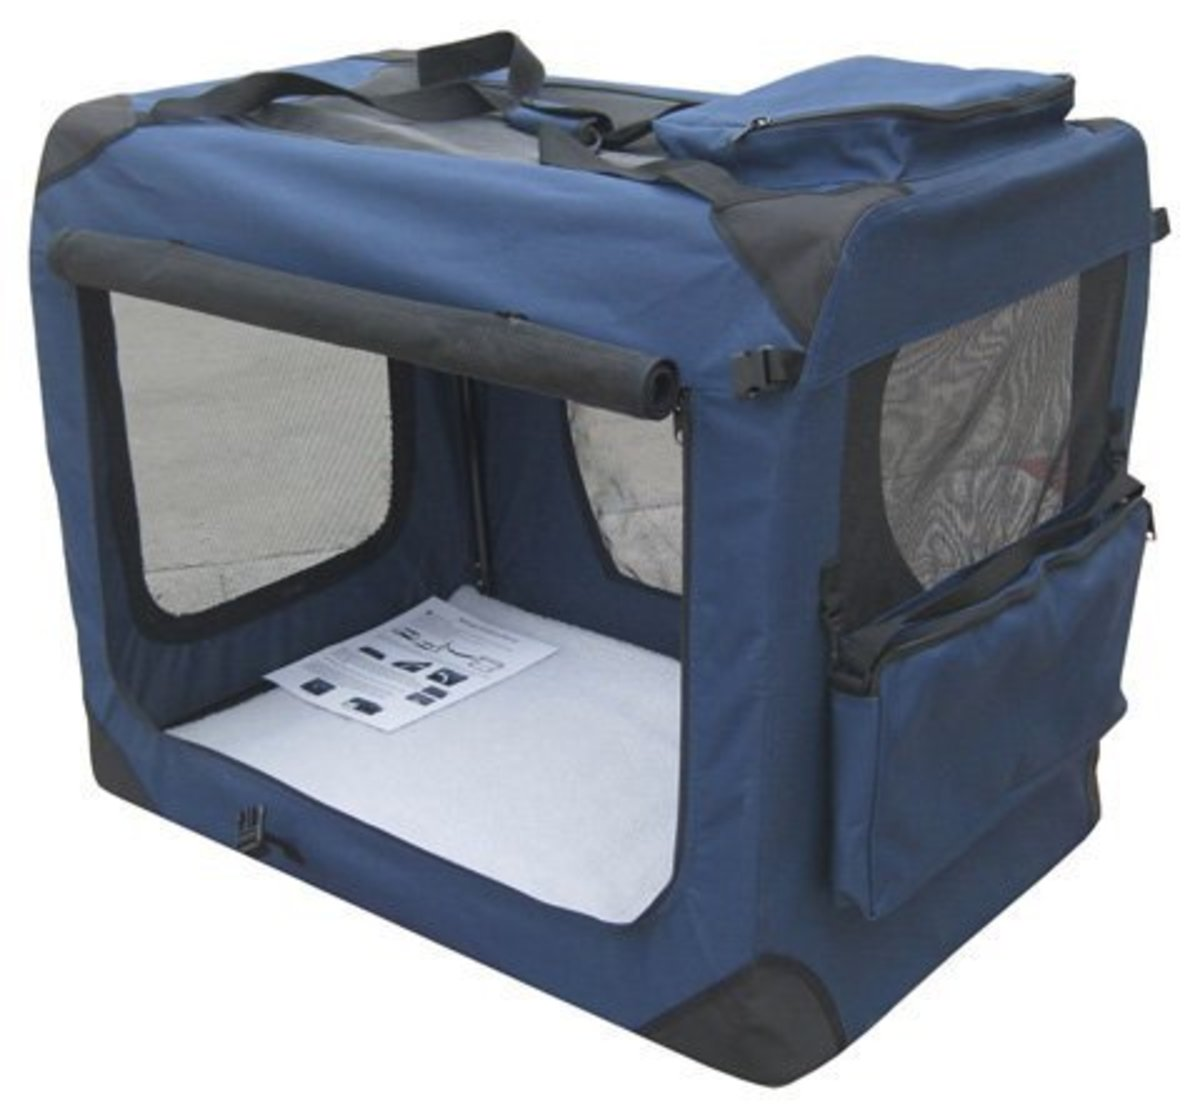 Soft-sided crate for dogs that are already crate-trained.